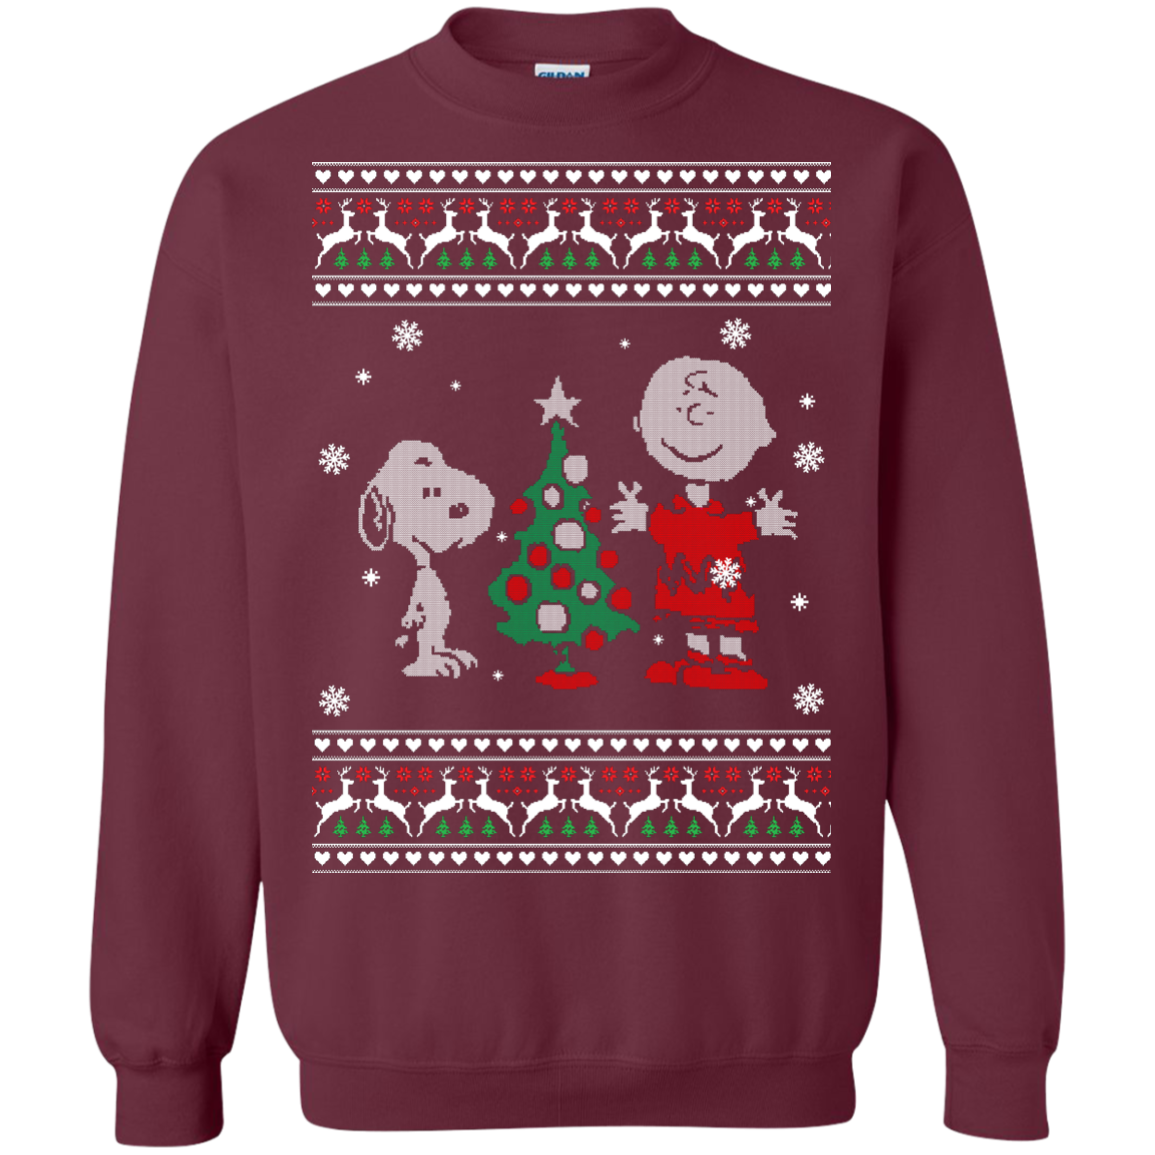 Snoopy Christmas Images.Snoopy Christmas Sweater Snoopy And Peanuts Christmas Shirt